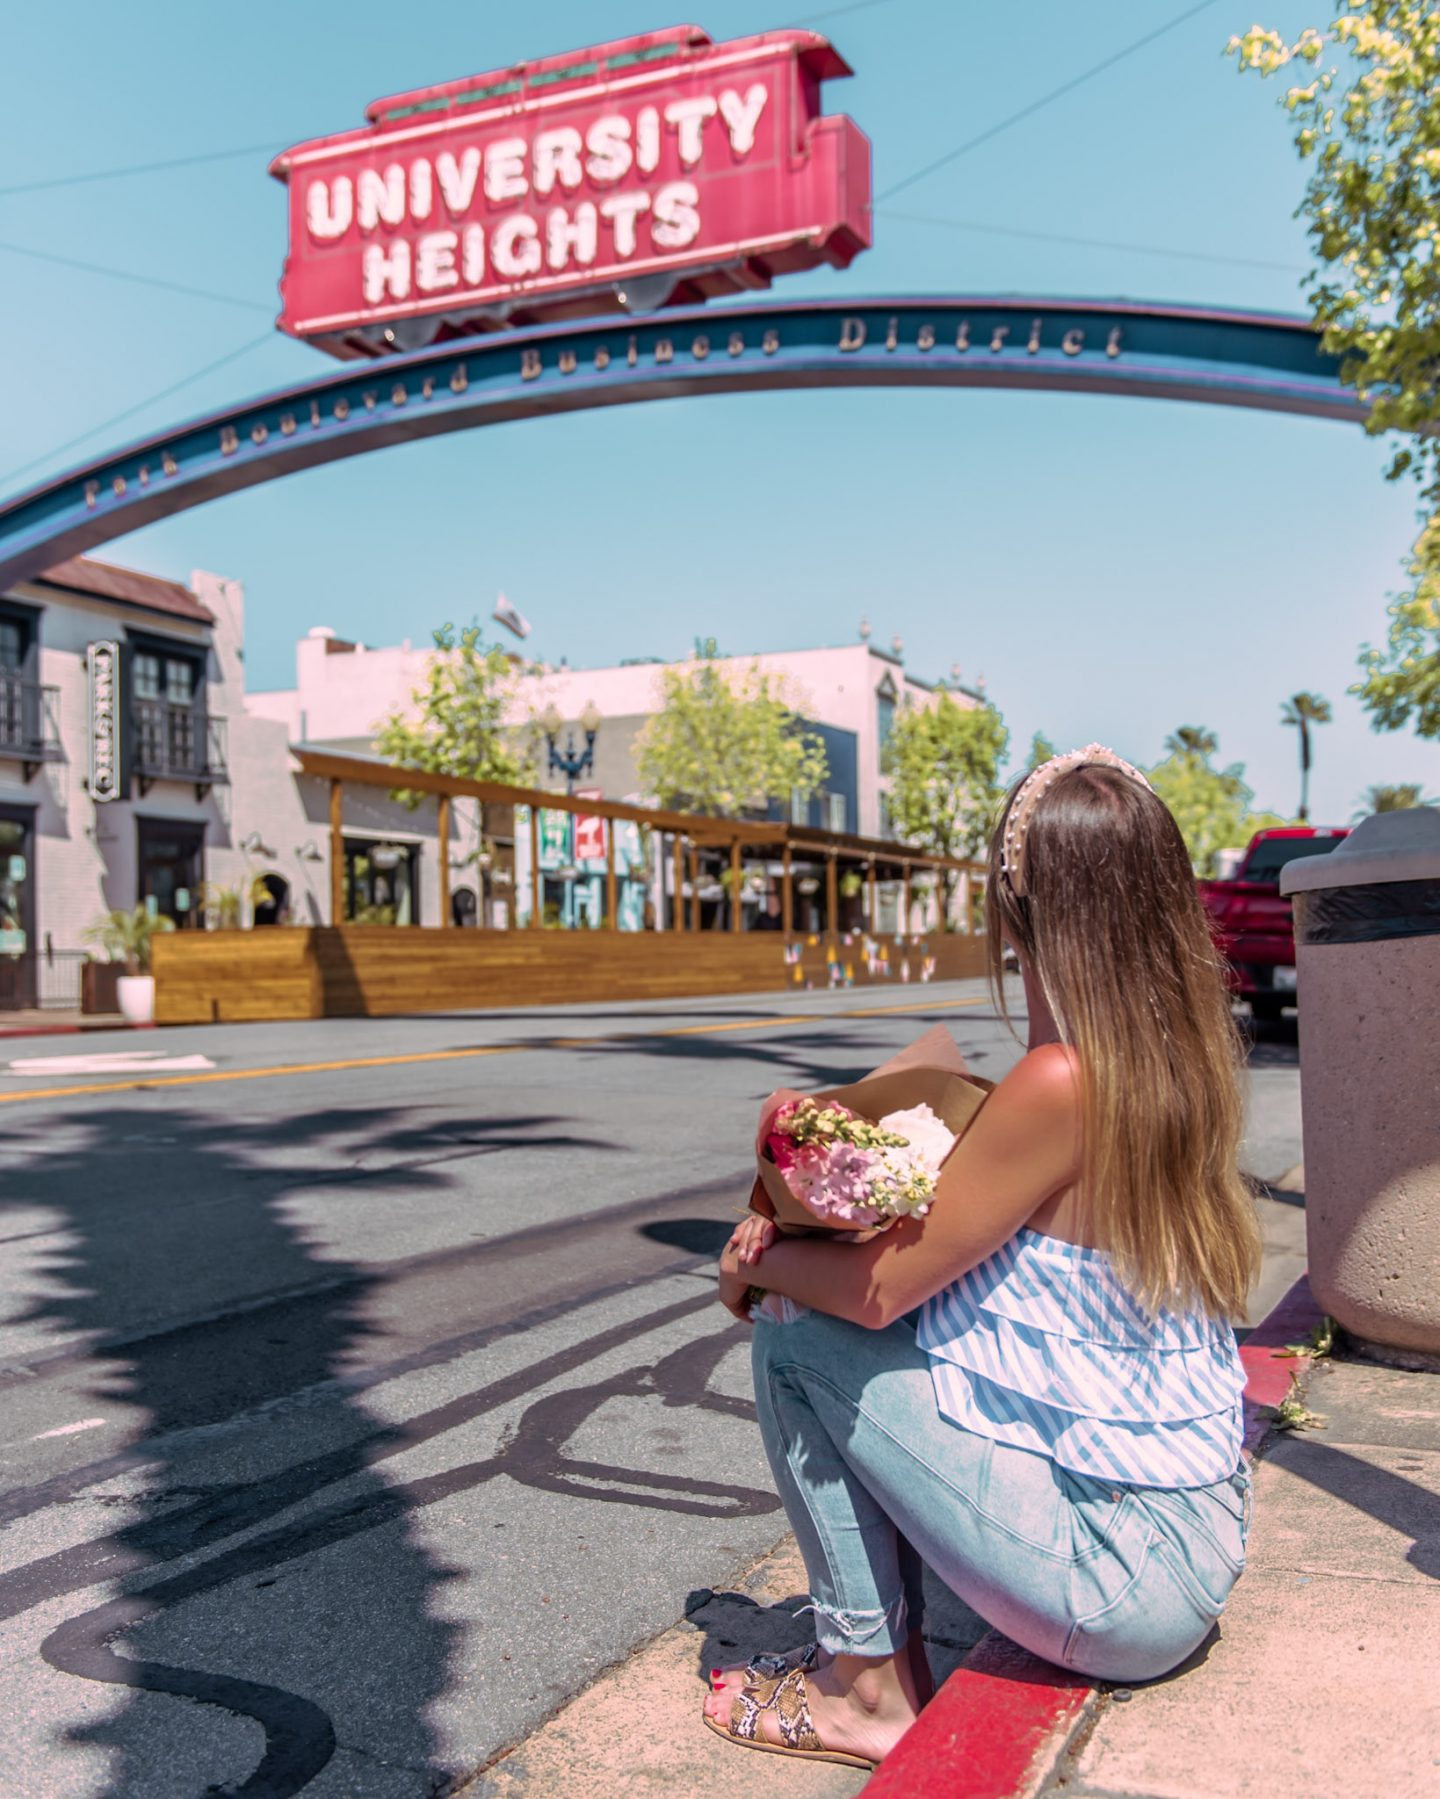 Sitting under the university heights street sign in San diego california